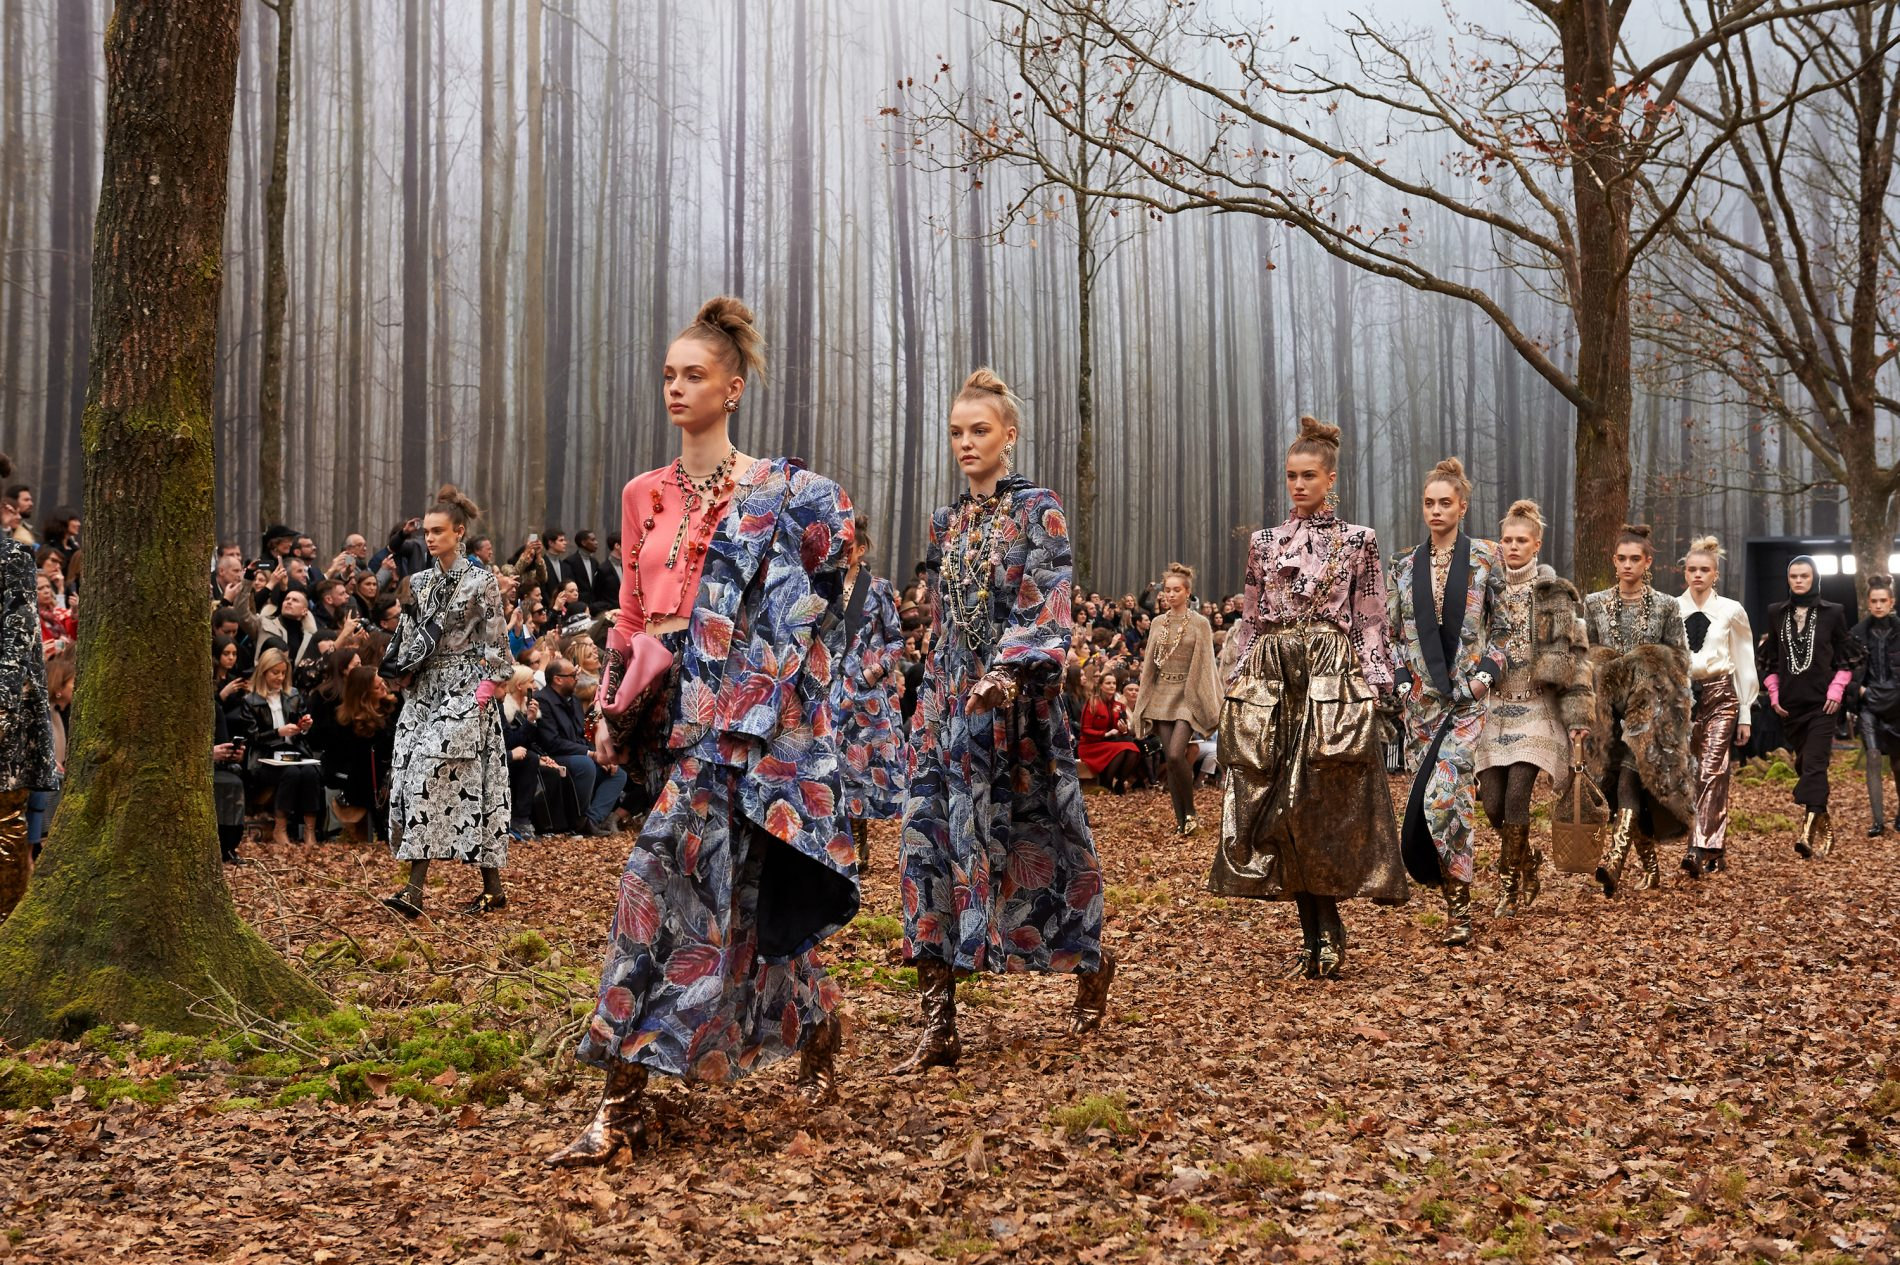 Chanel_FW_2018_19_RTW_Finale_picture_by_Olivier_Saillant